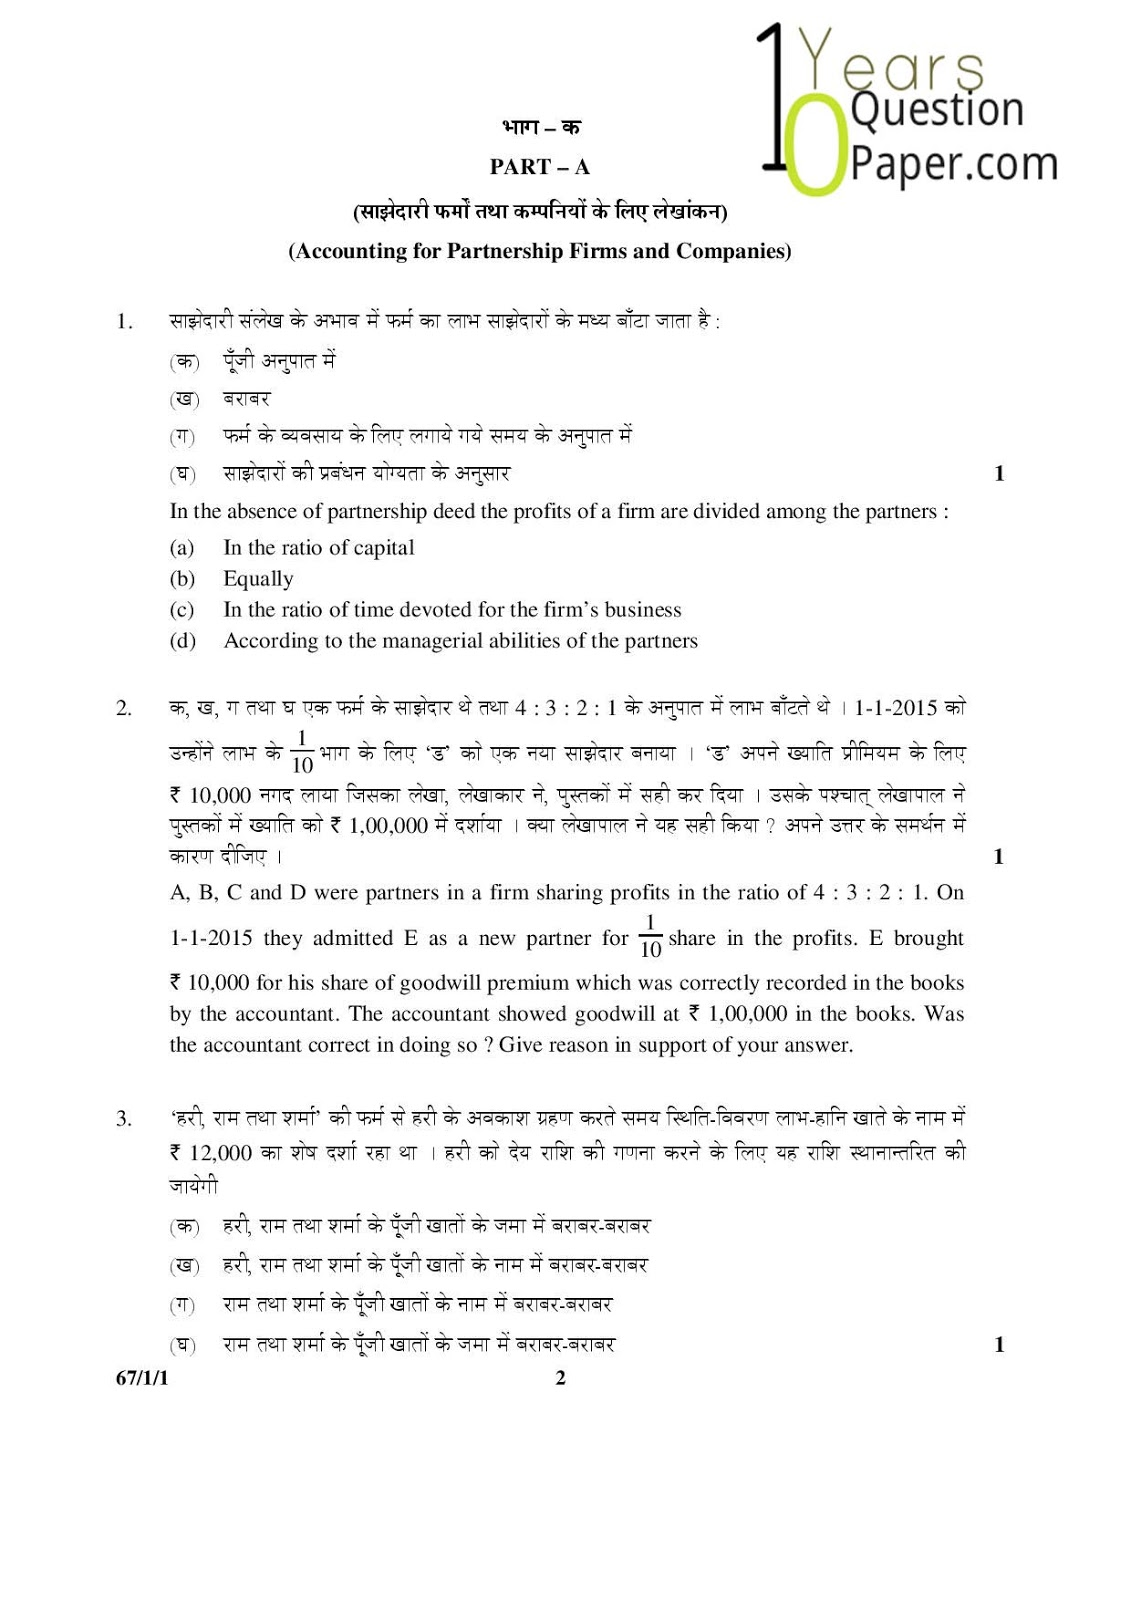 cbse accountancy class board question paper set  cbse class 12th 2015 accountancy question paper